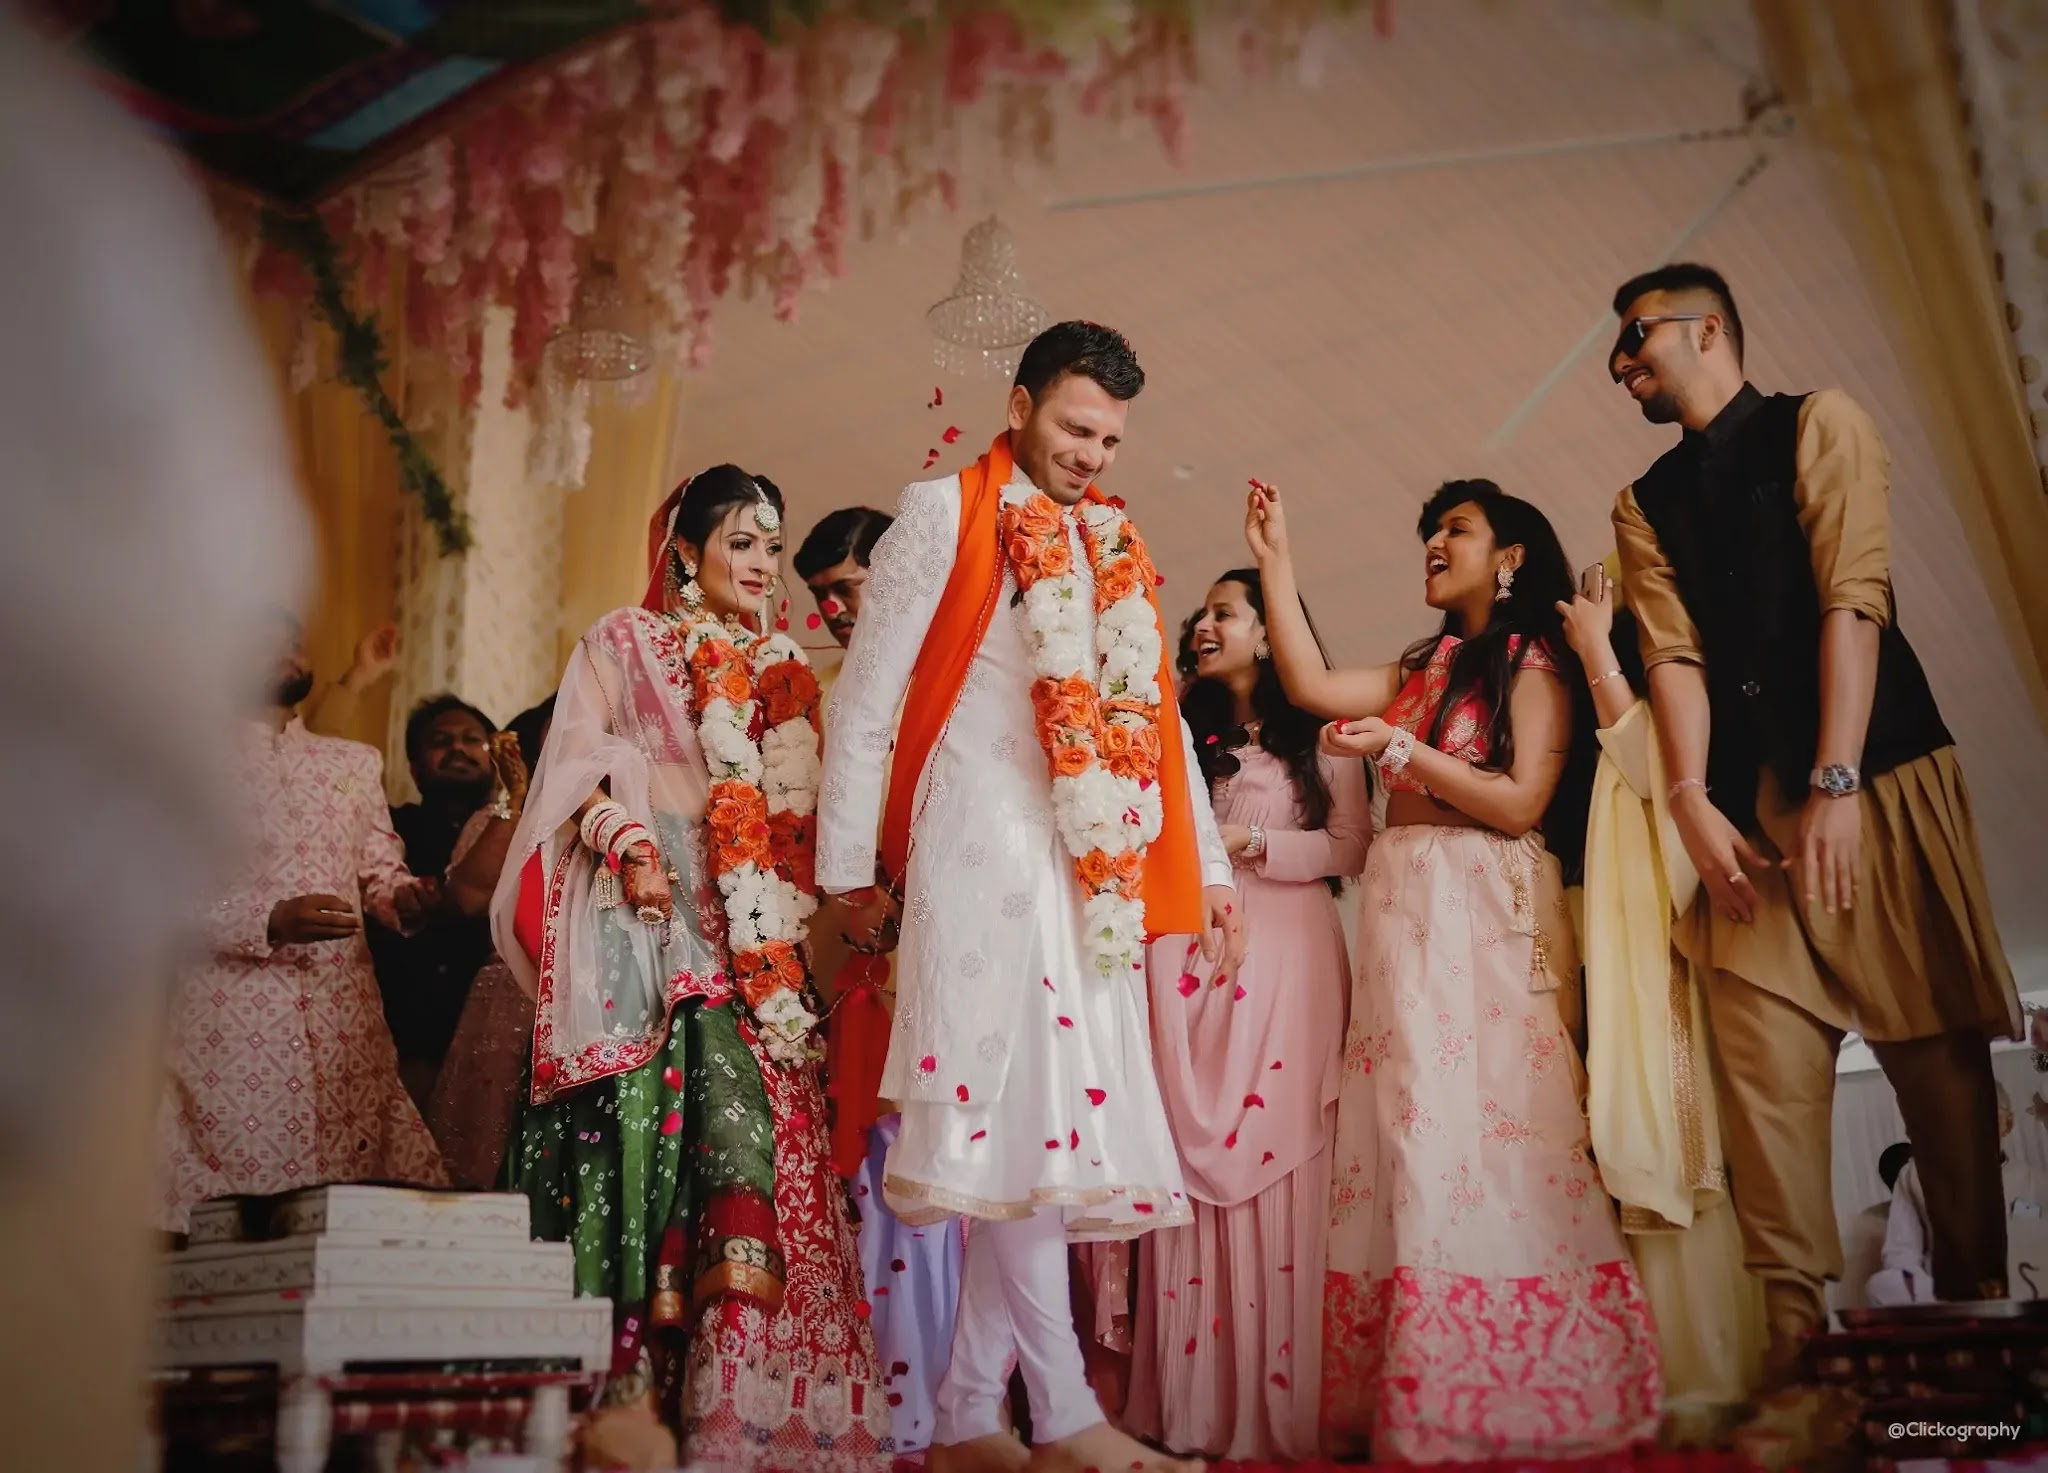 Clickography – Top pune photographers